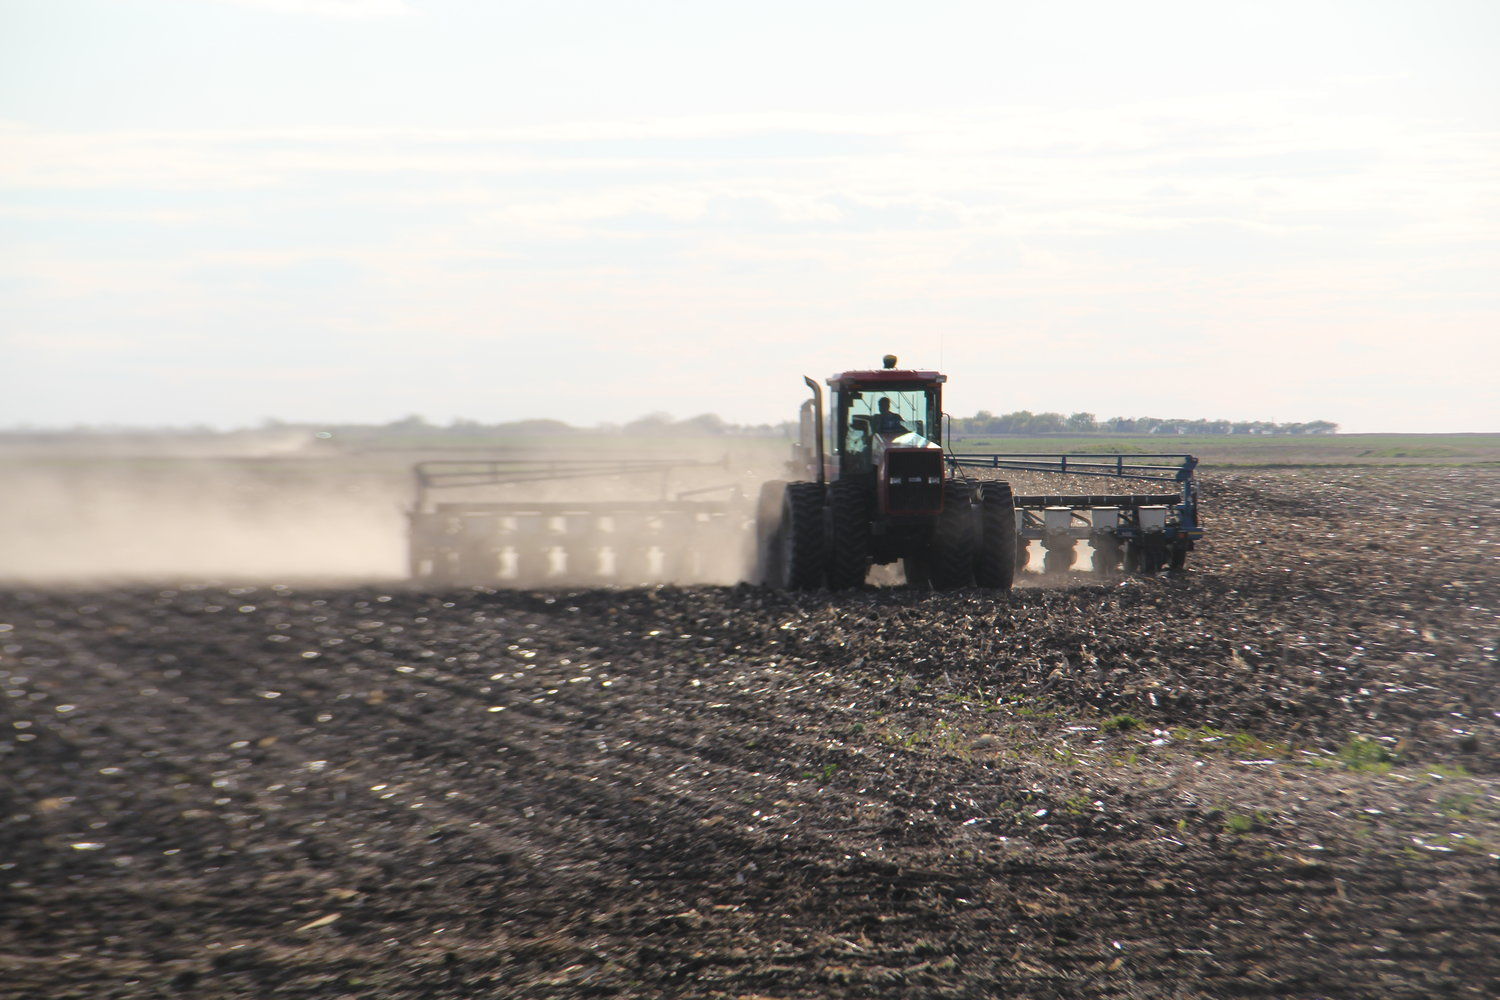 With better weather conditions this spring, farmers are working hard and letting the dust fly as they get fields ready for planting. Sporadic showers have stopped farmers occasionally, but overall, farming spirits are optimistic.